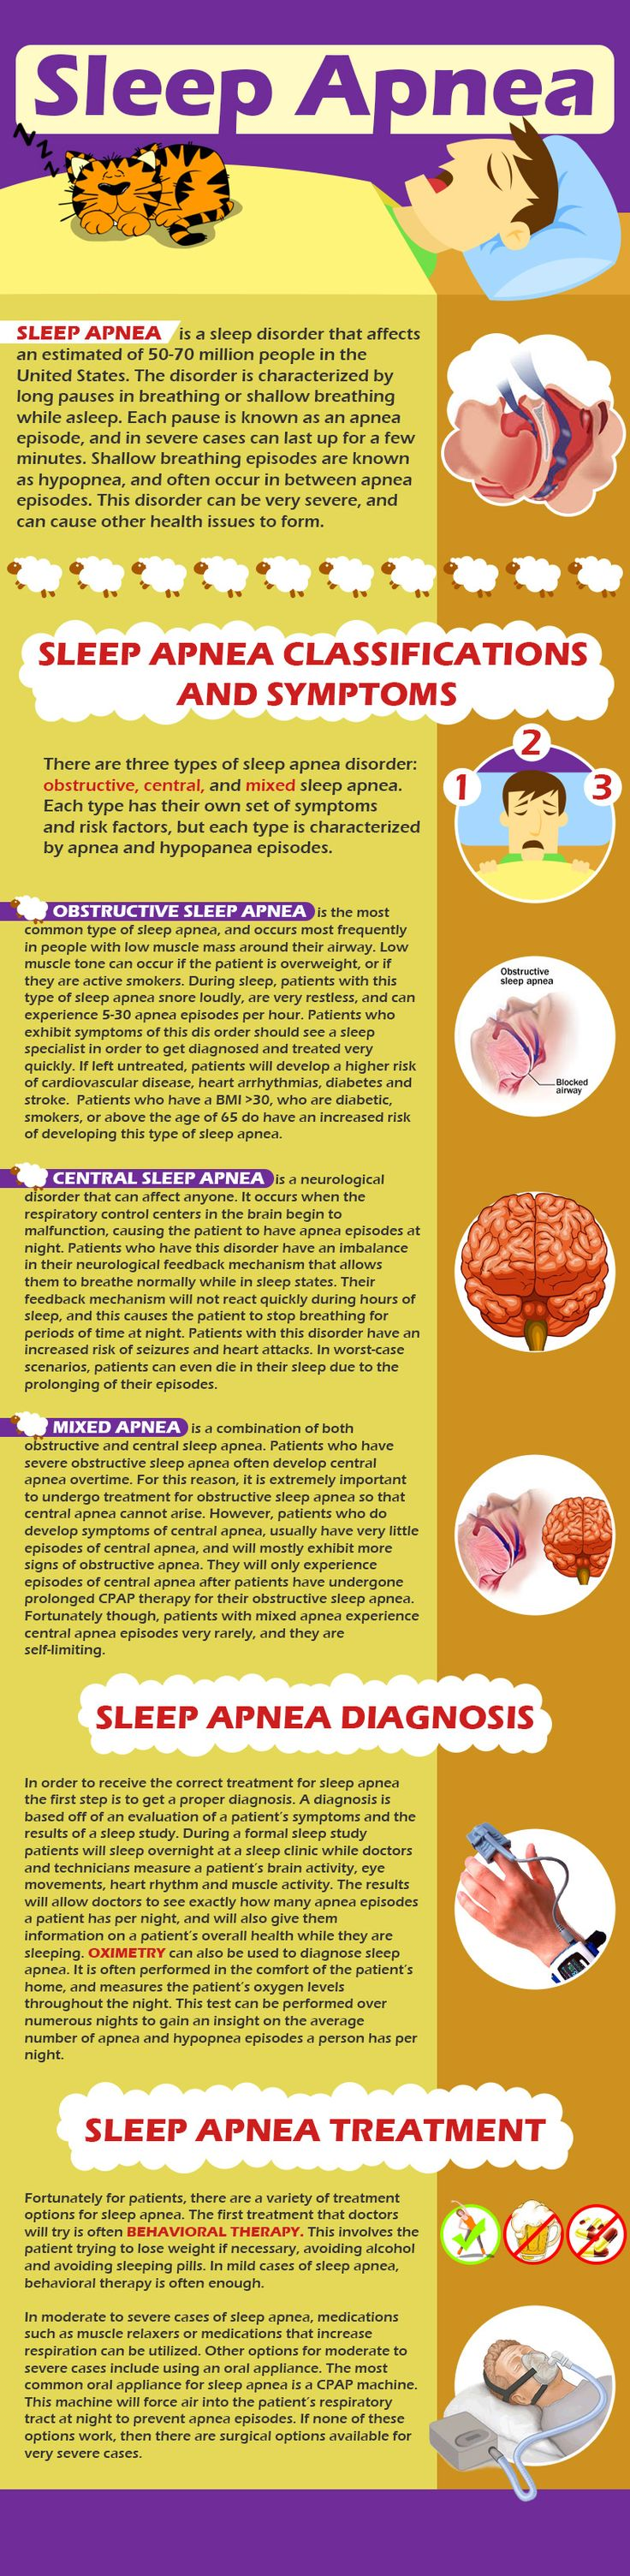 Click here to review this infographic on sleep apnea symptoms and treatment from Darren Flowers DMD, dentist in Anthem, Arizona.